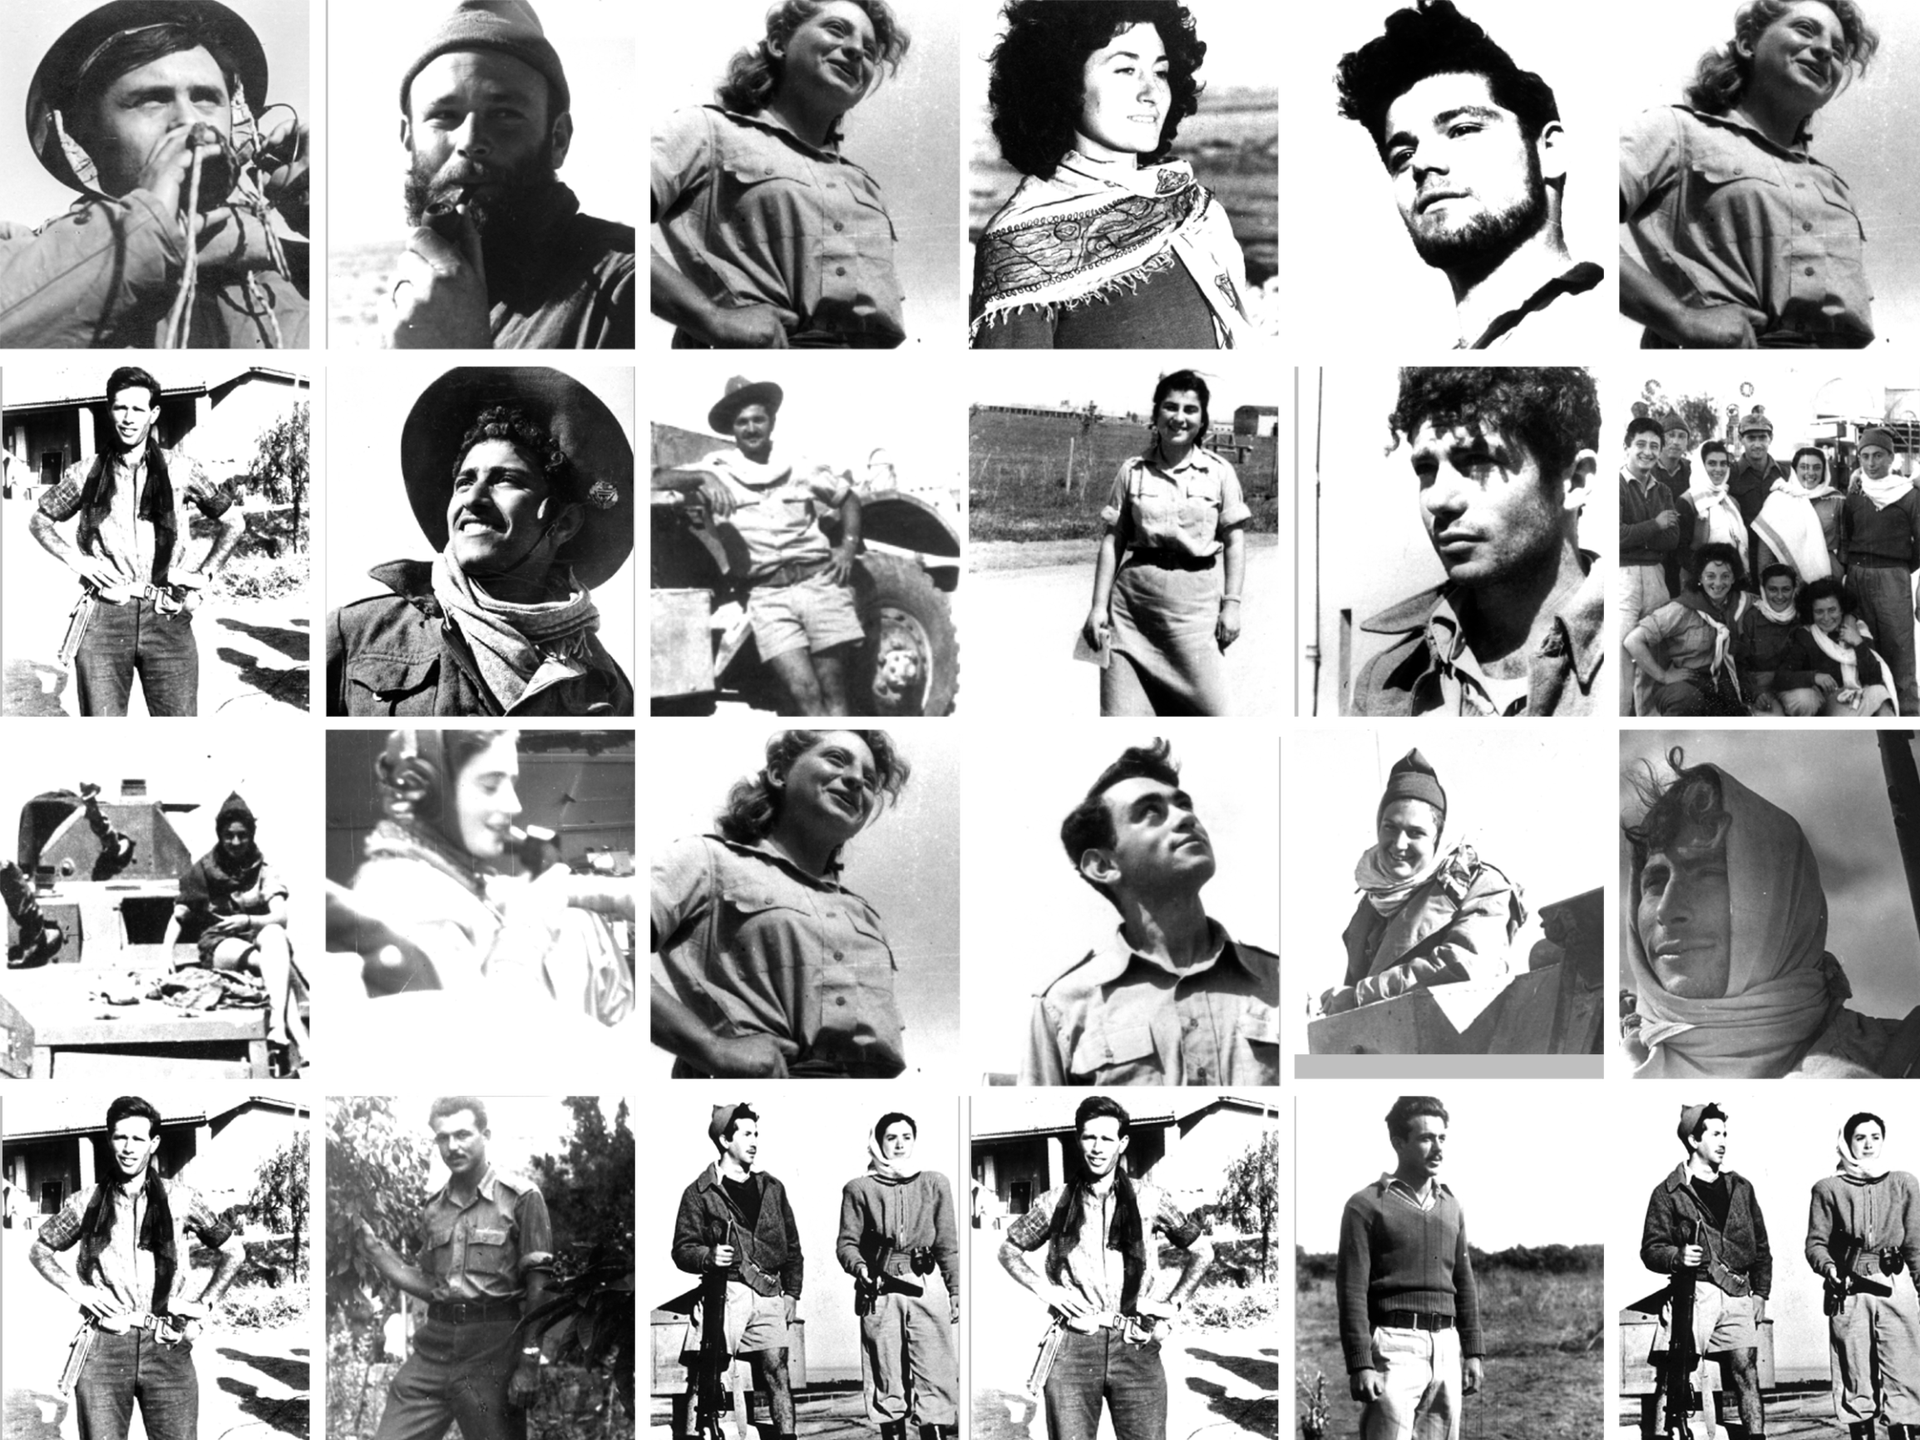 Recognize anyone? The Palmach Museum is trying to identify who's in these pictures of believed pre-state underground fighters